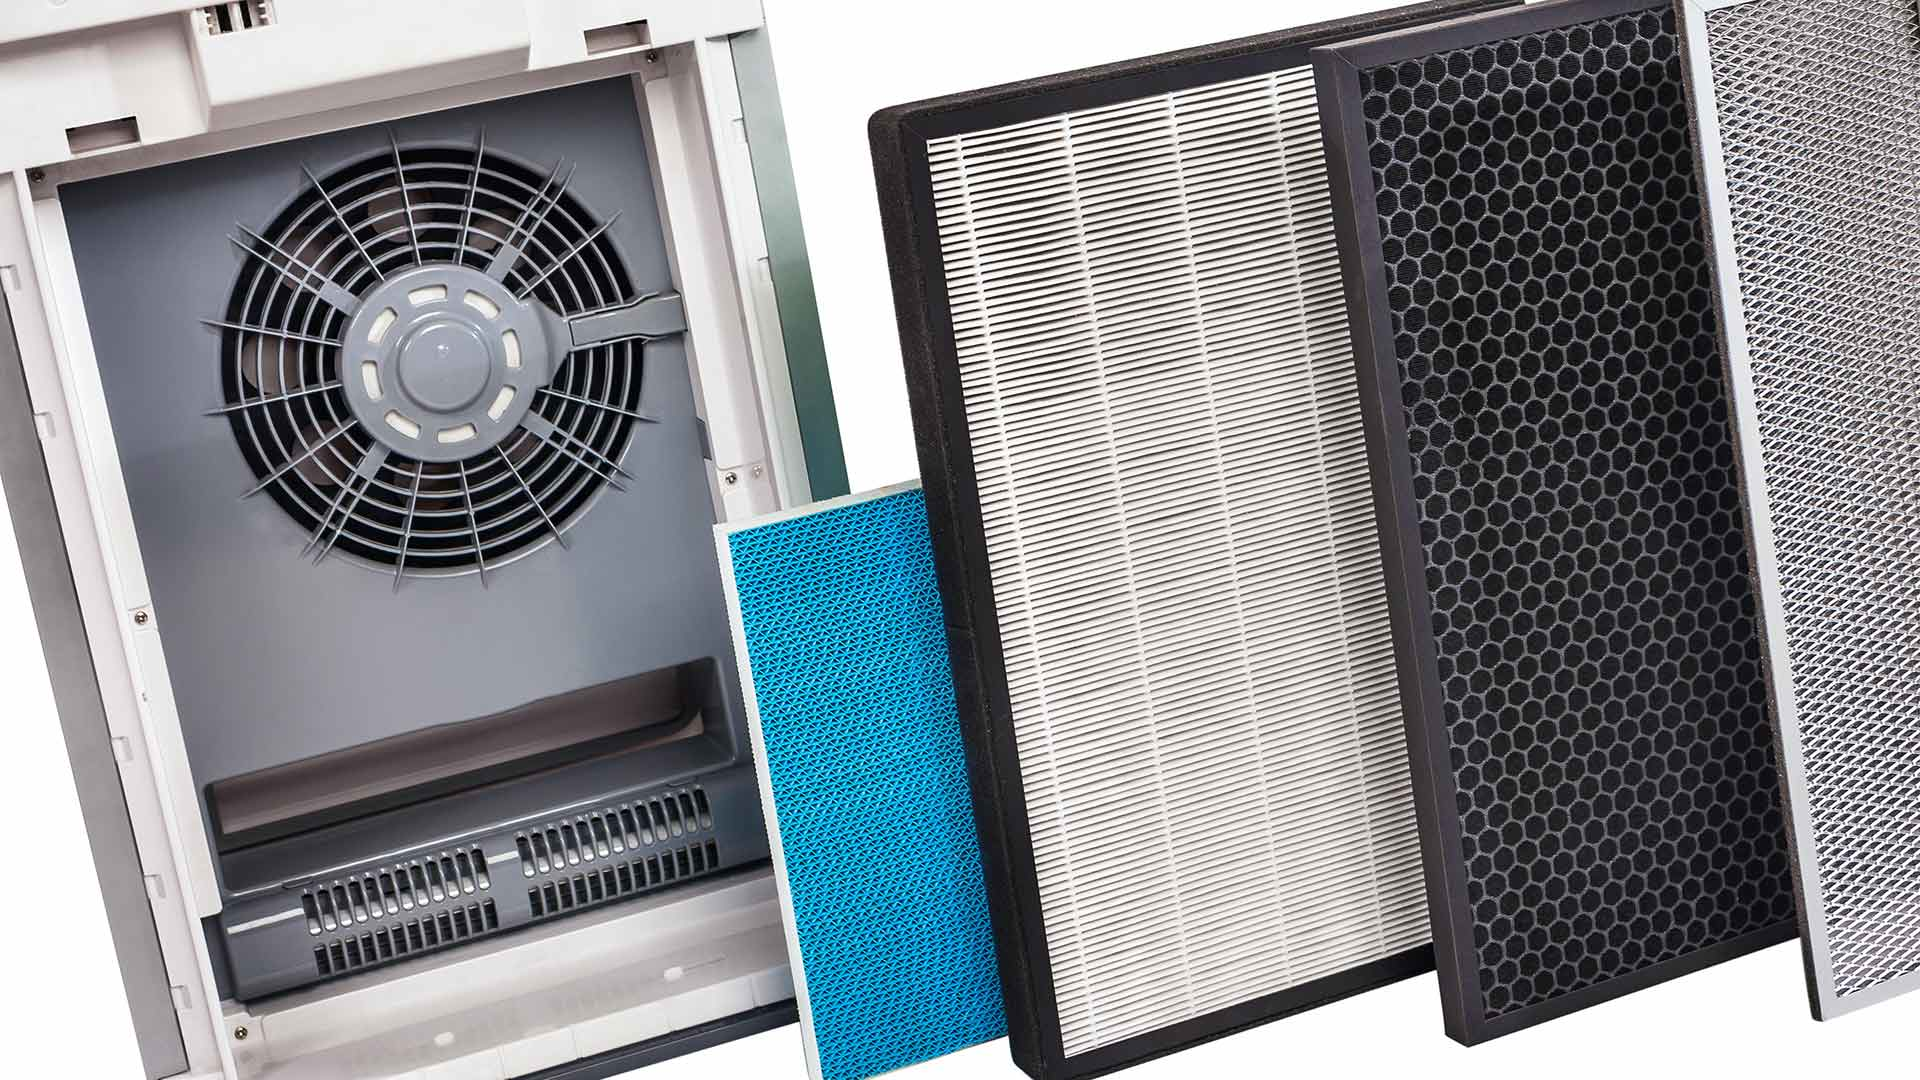 Whole house air purification system, including filters